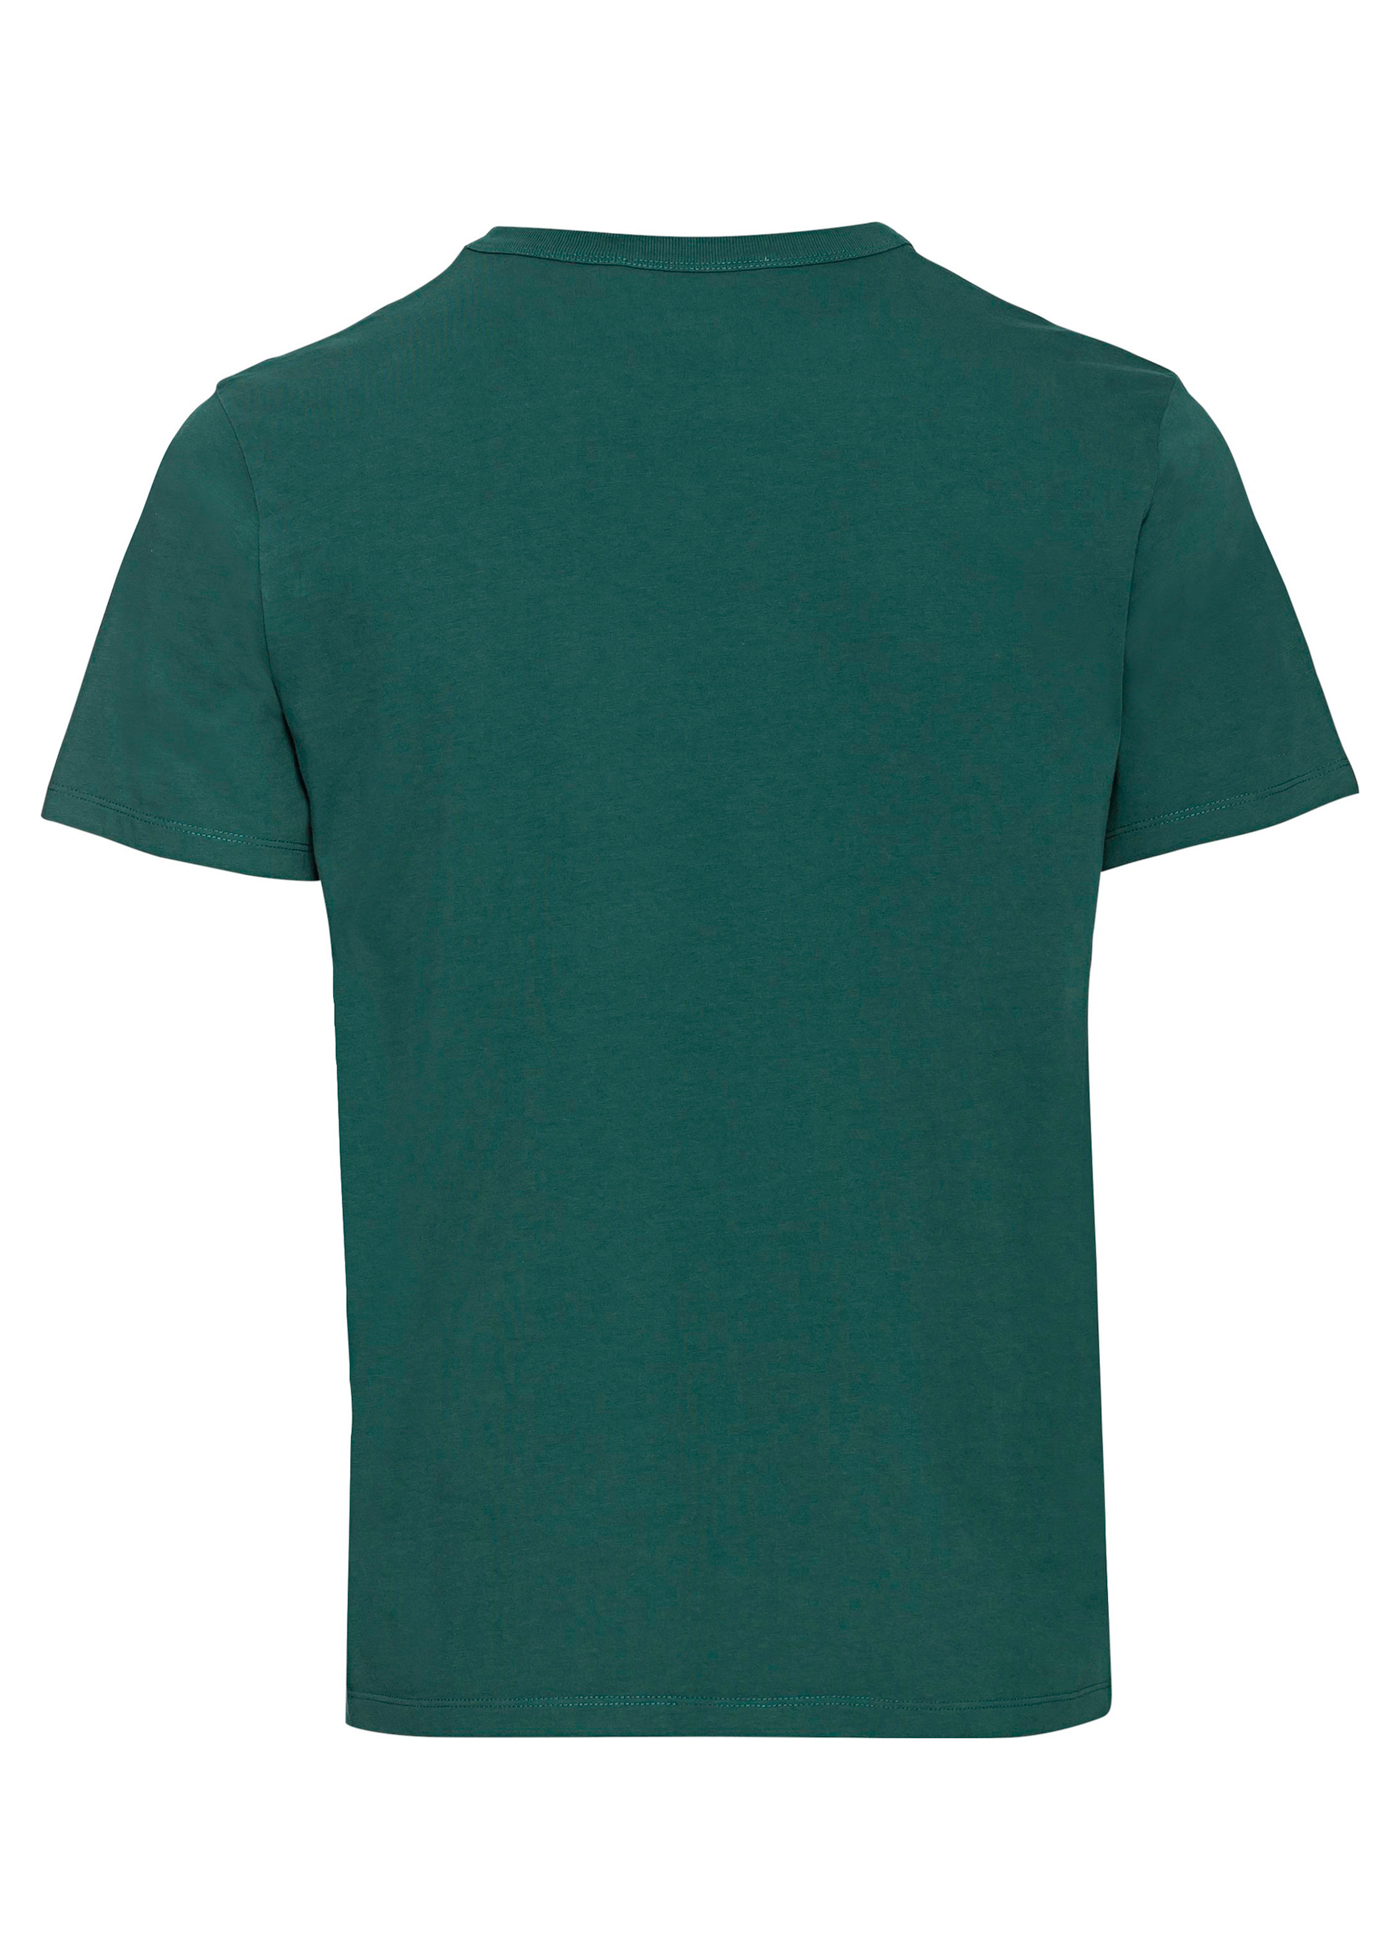 GREY FOX HEAD PATCH CLASSIC TEE-SHIRT image number 1